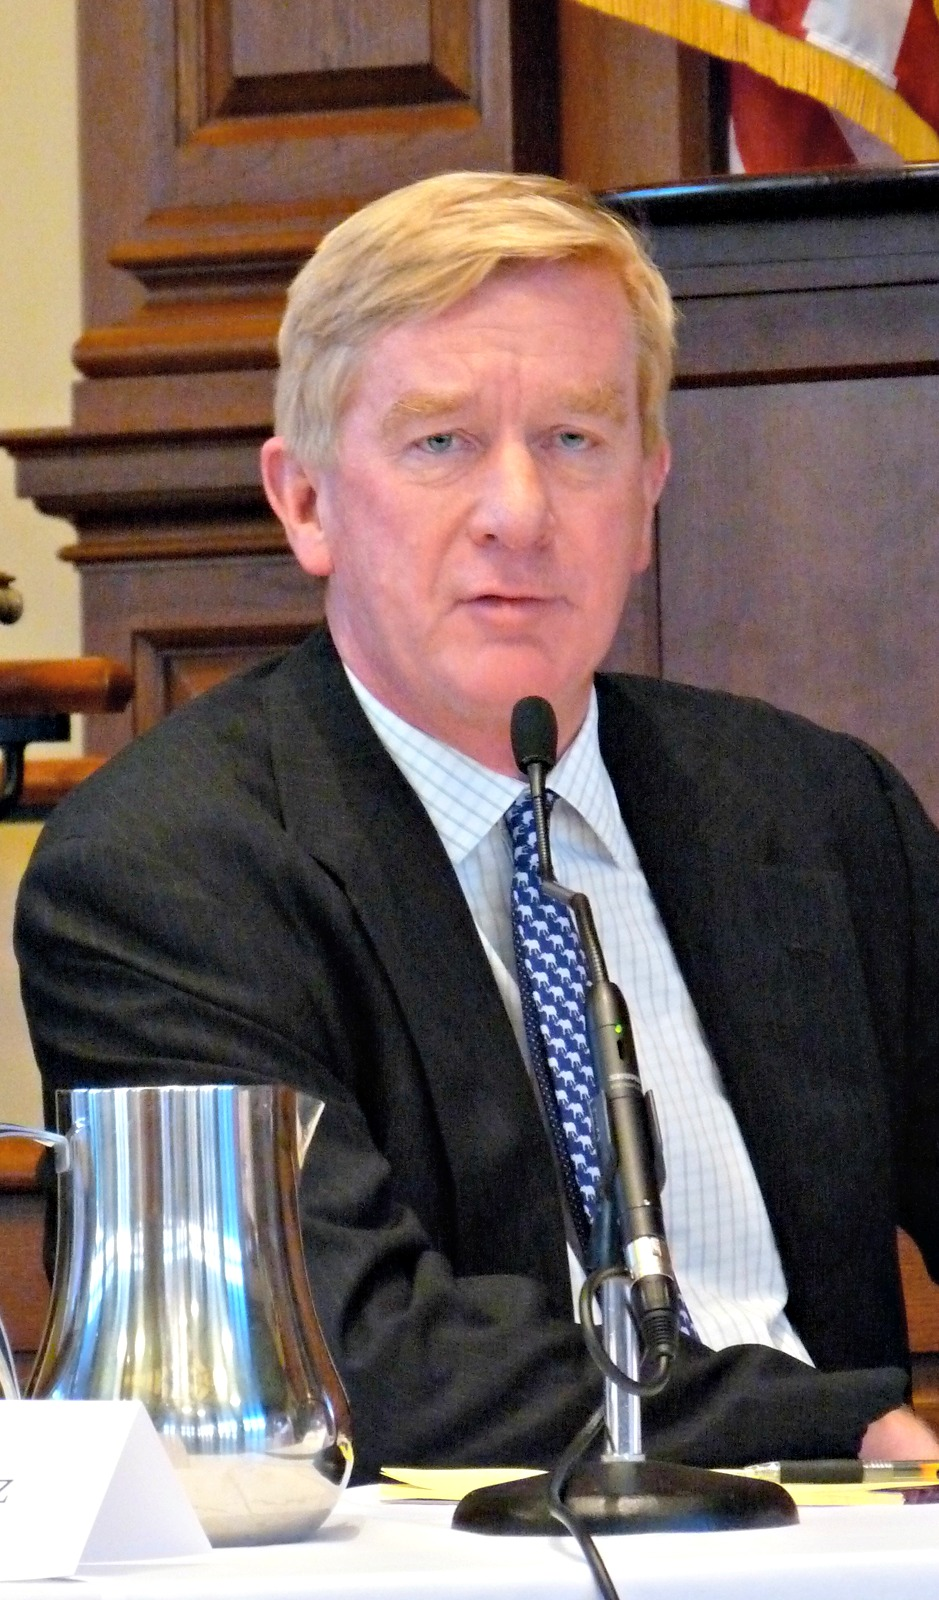 Former Mass. Gov. Bill Weld is the Libertarian VP candidate ... and Sinacola says we should be talking more about that.